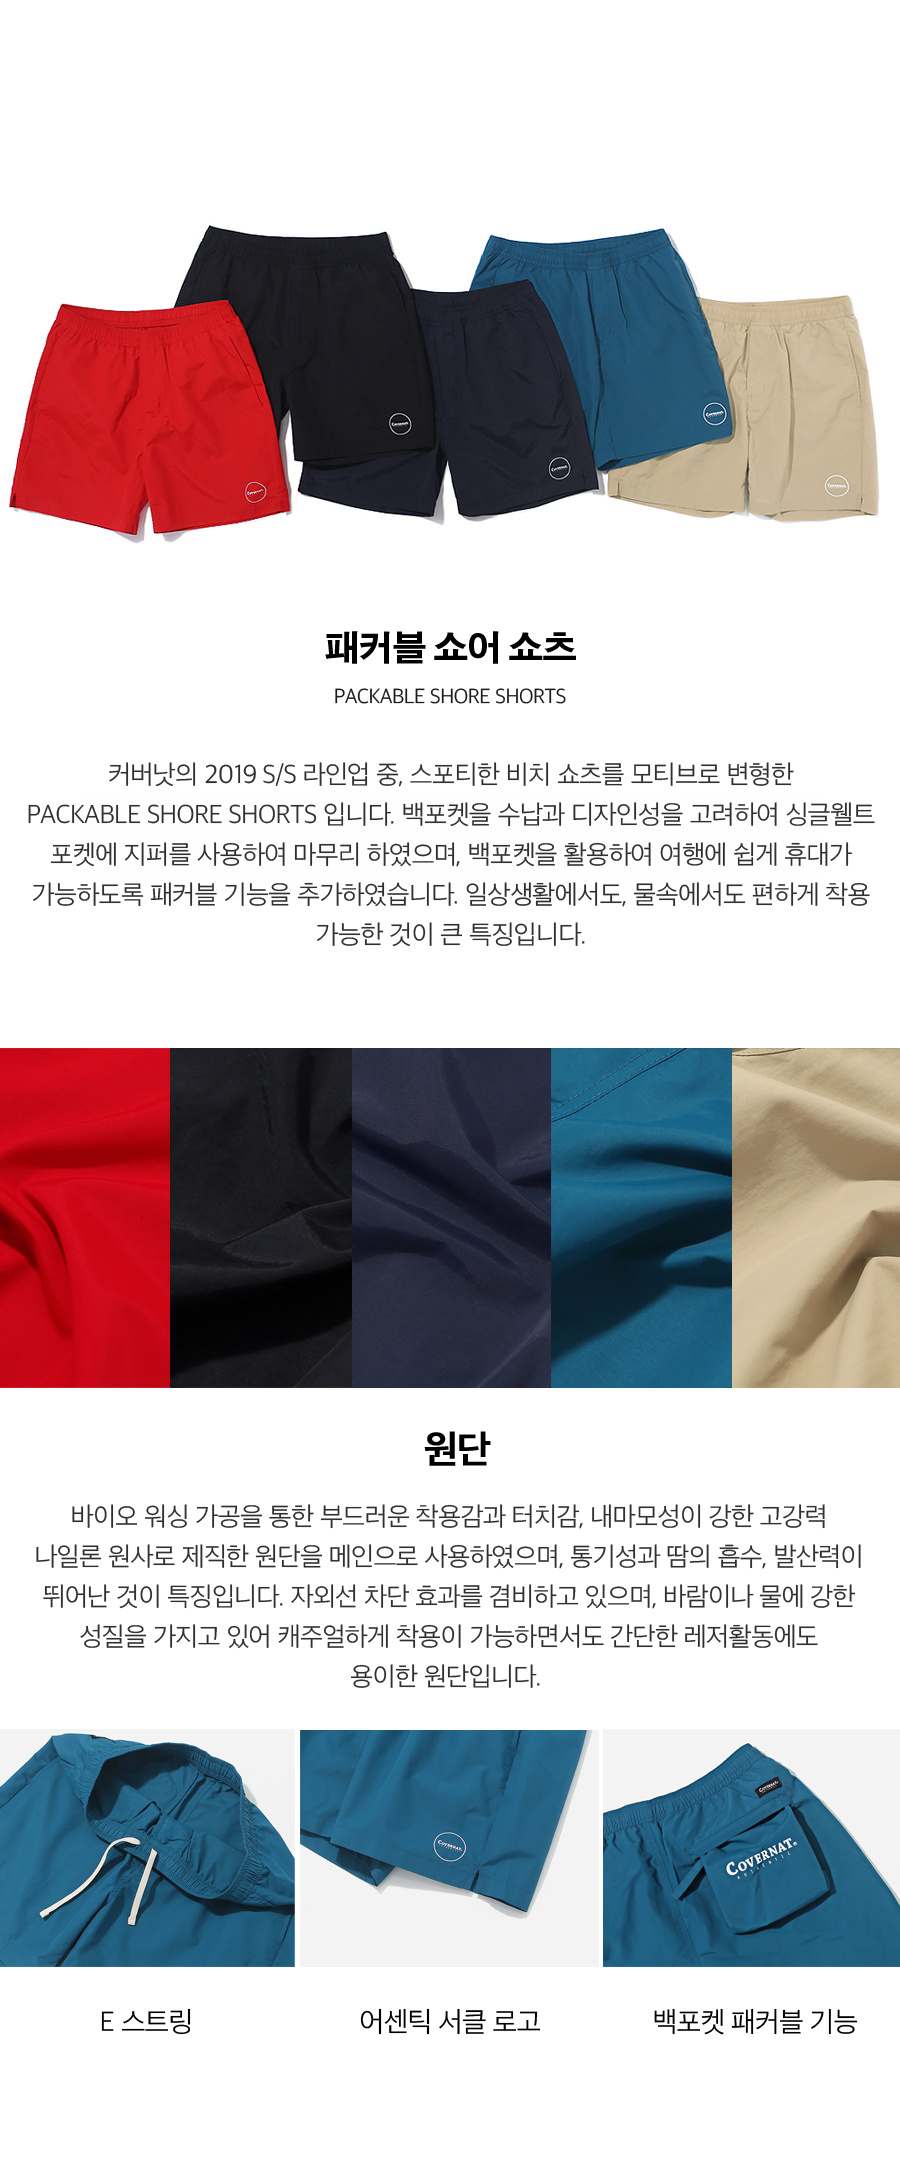 커버낫(COVERNAT) PACKABLE SHORE SHORTS BEIGE